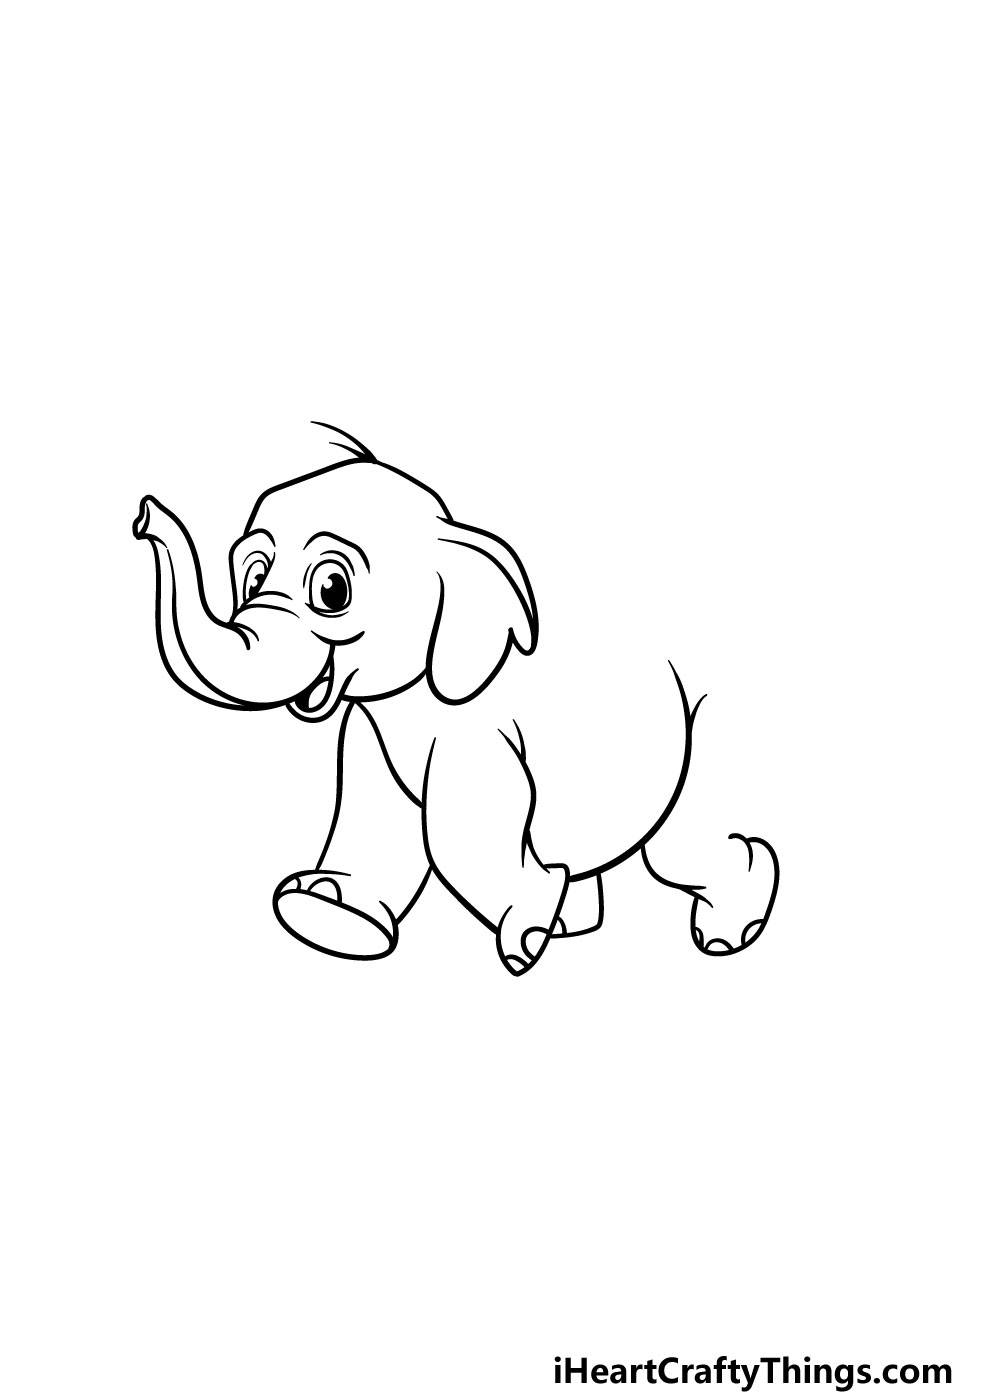 drawing a baby elephant step 4